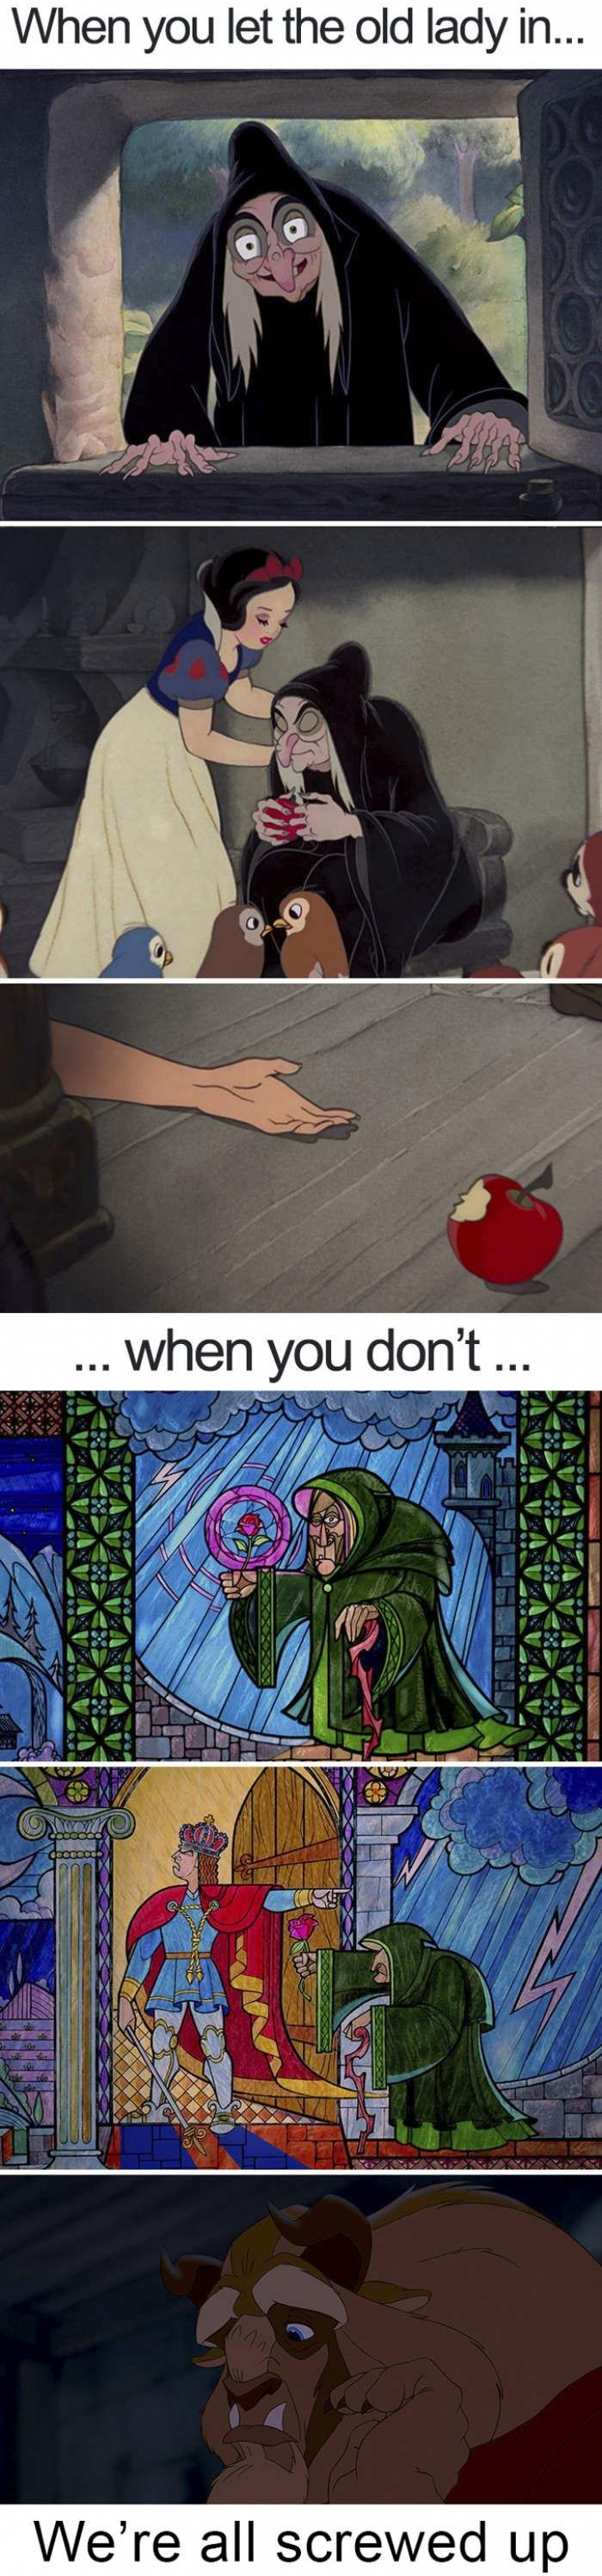 30+ Funny Disney Memes That Will Make You Laugh